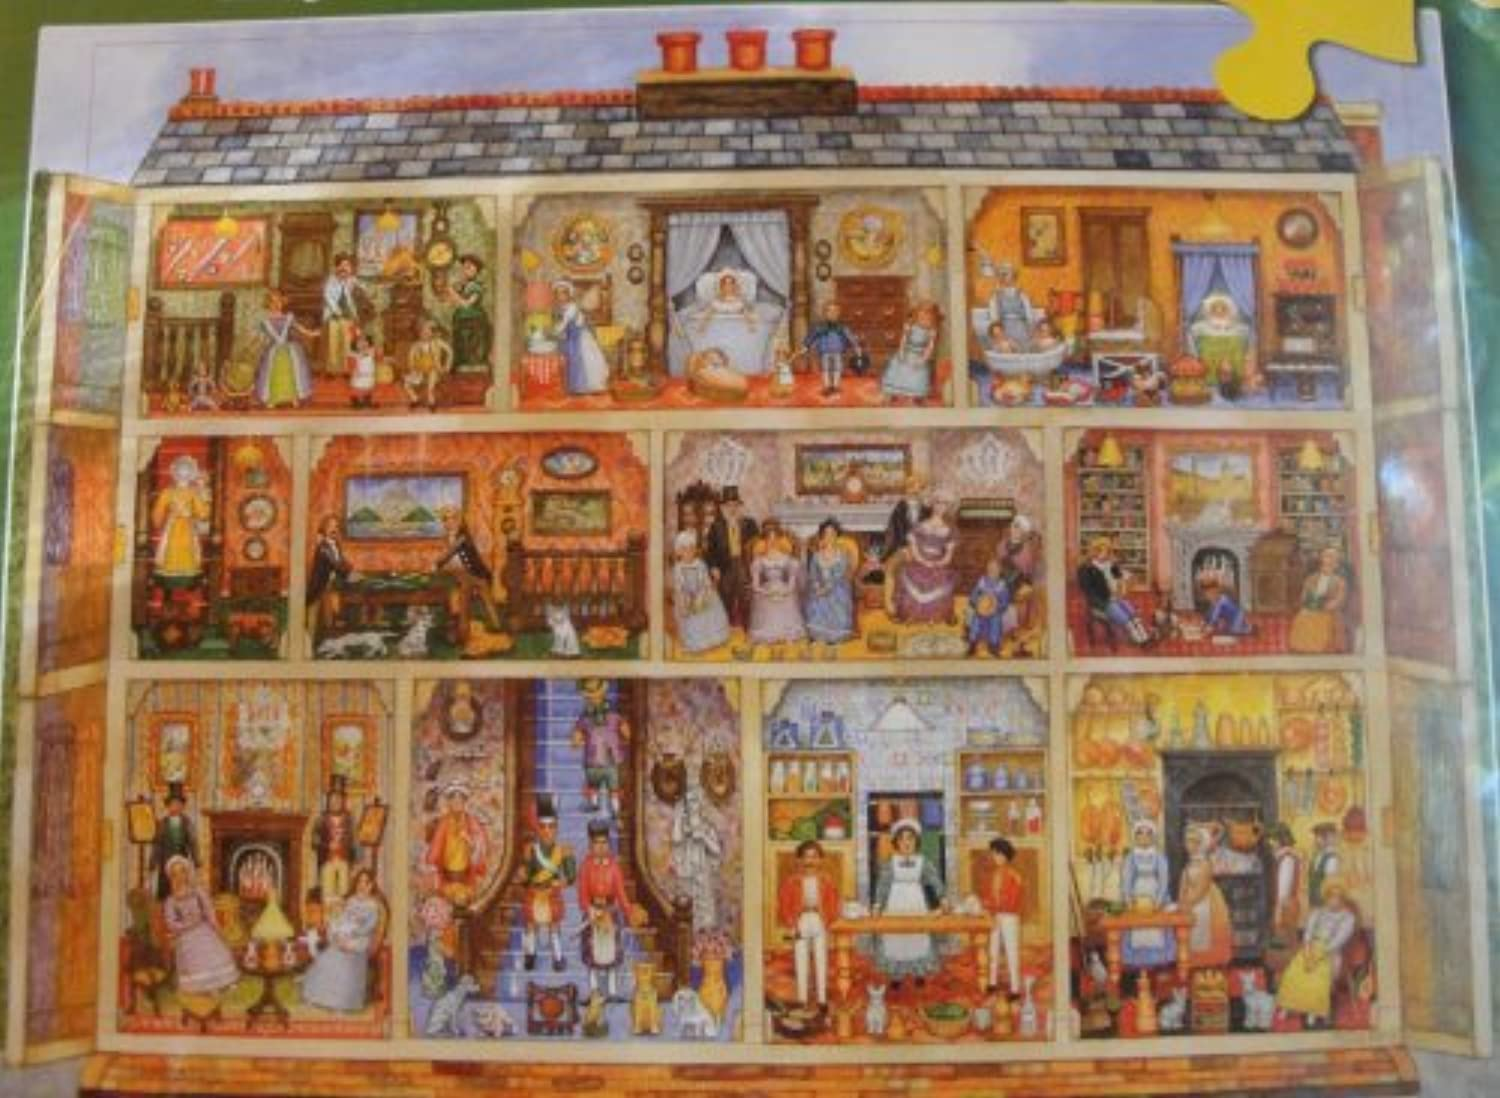 Victorian Dollhouse Jigsaw Puzzle by Great American Puzzle Factory